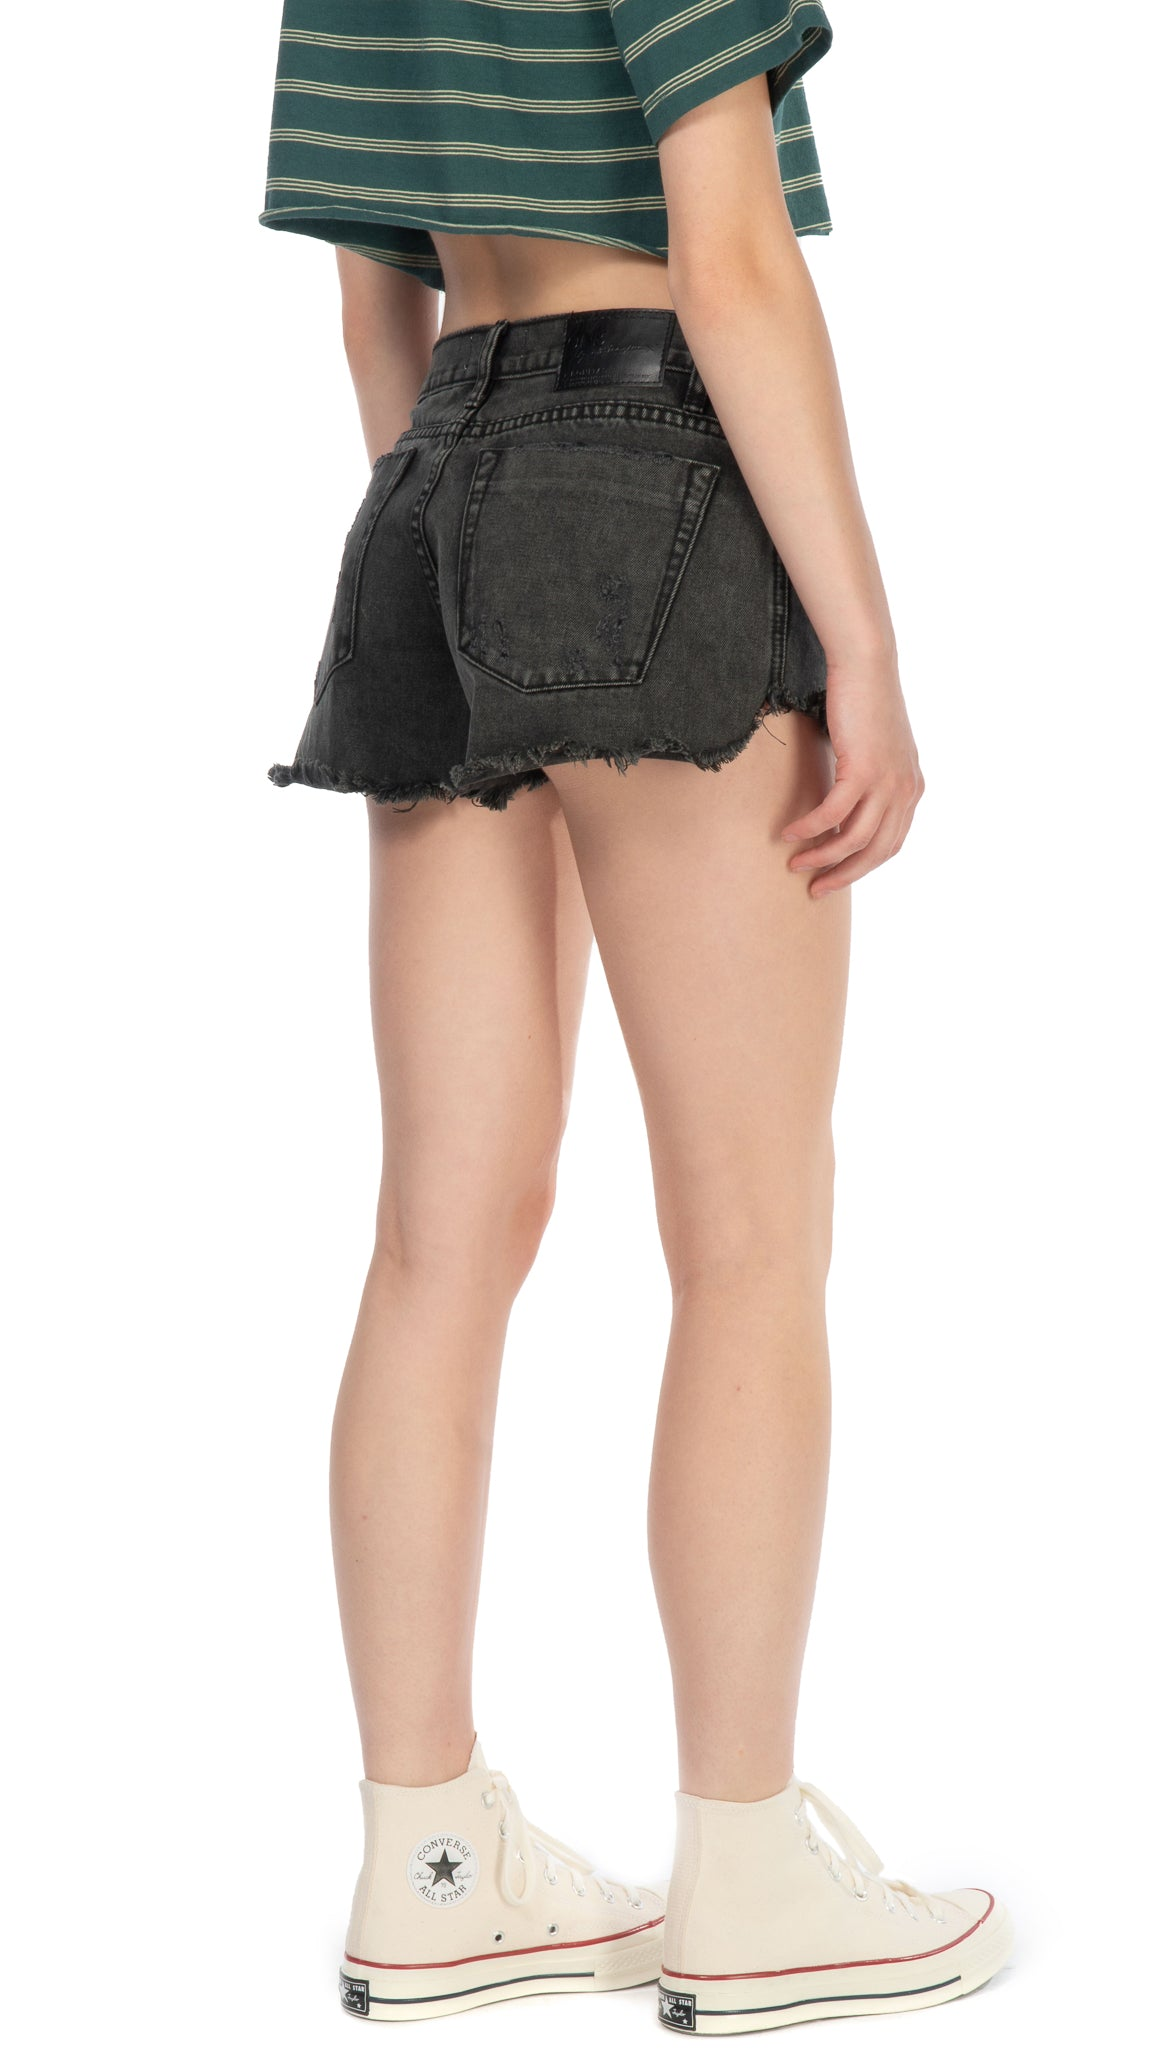 One Teaspoon, Coal Rollers Low Rise Distressed Denim Short, Clothing - Bottoms - Shorts - Editorial Boutique